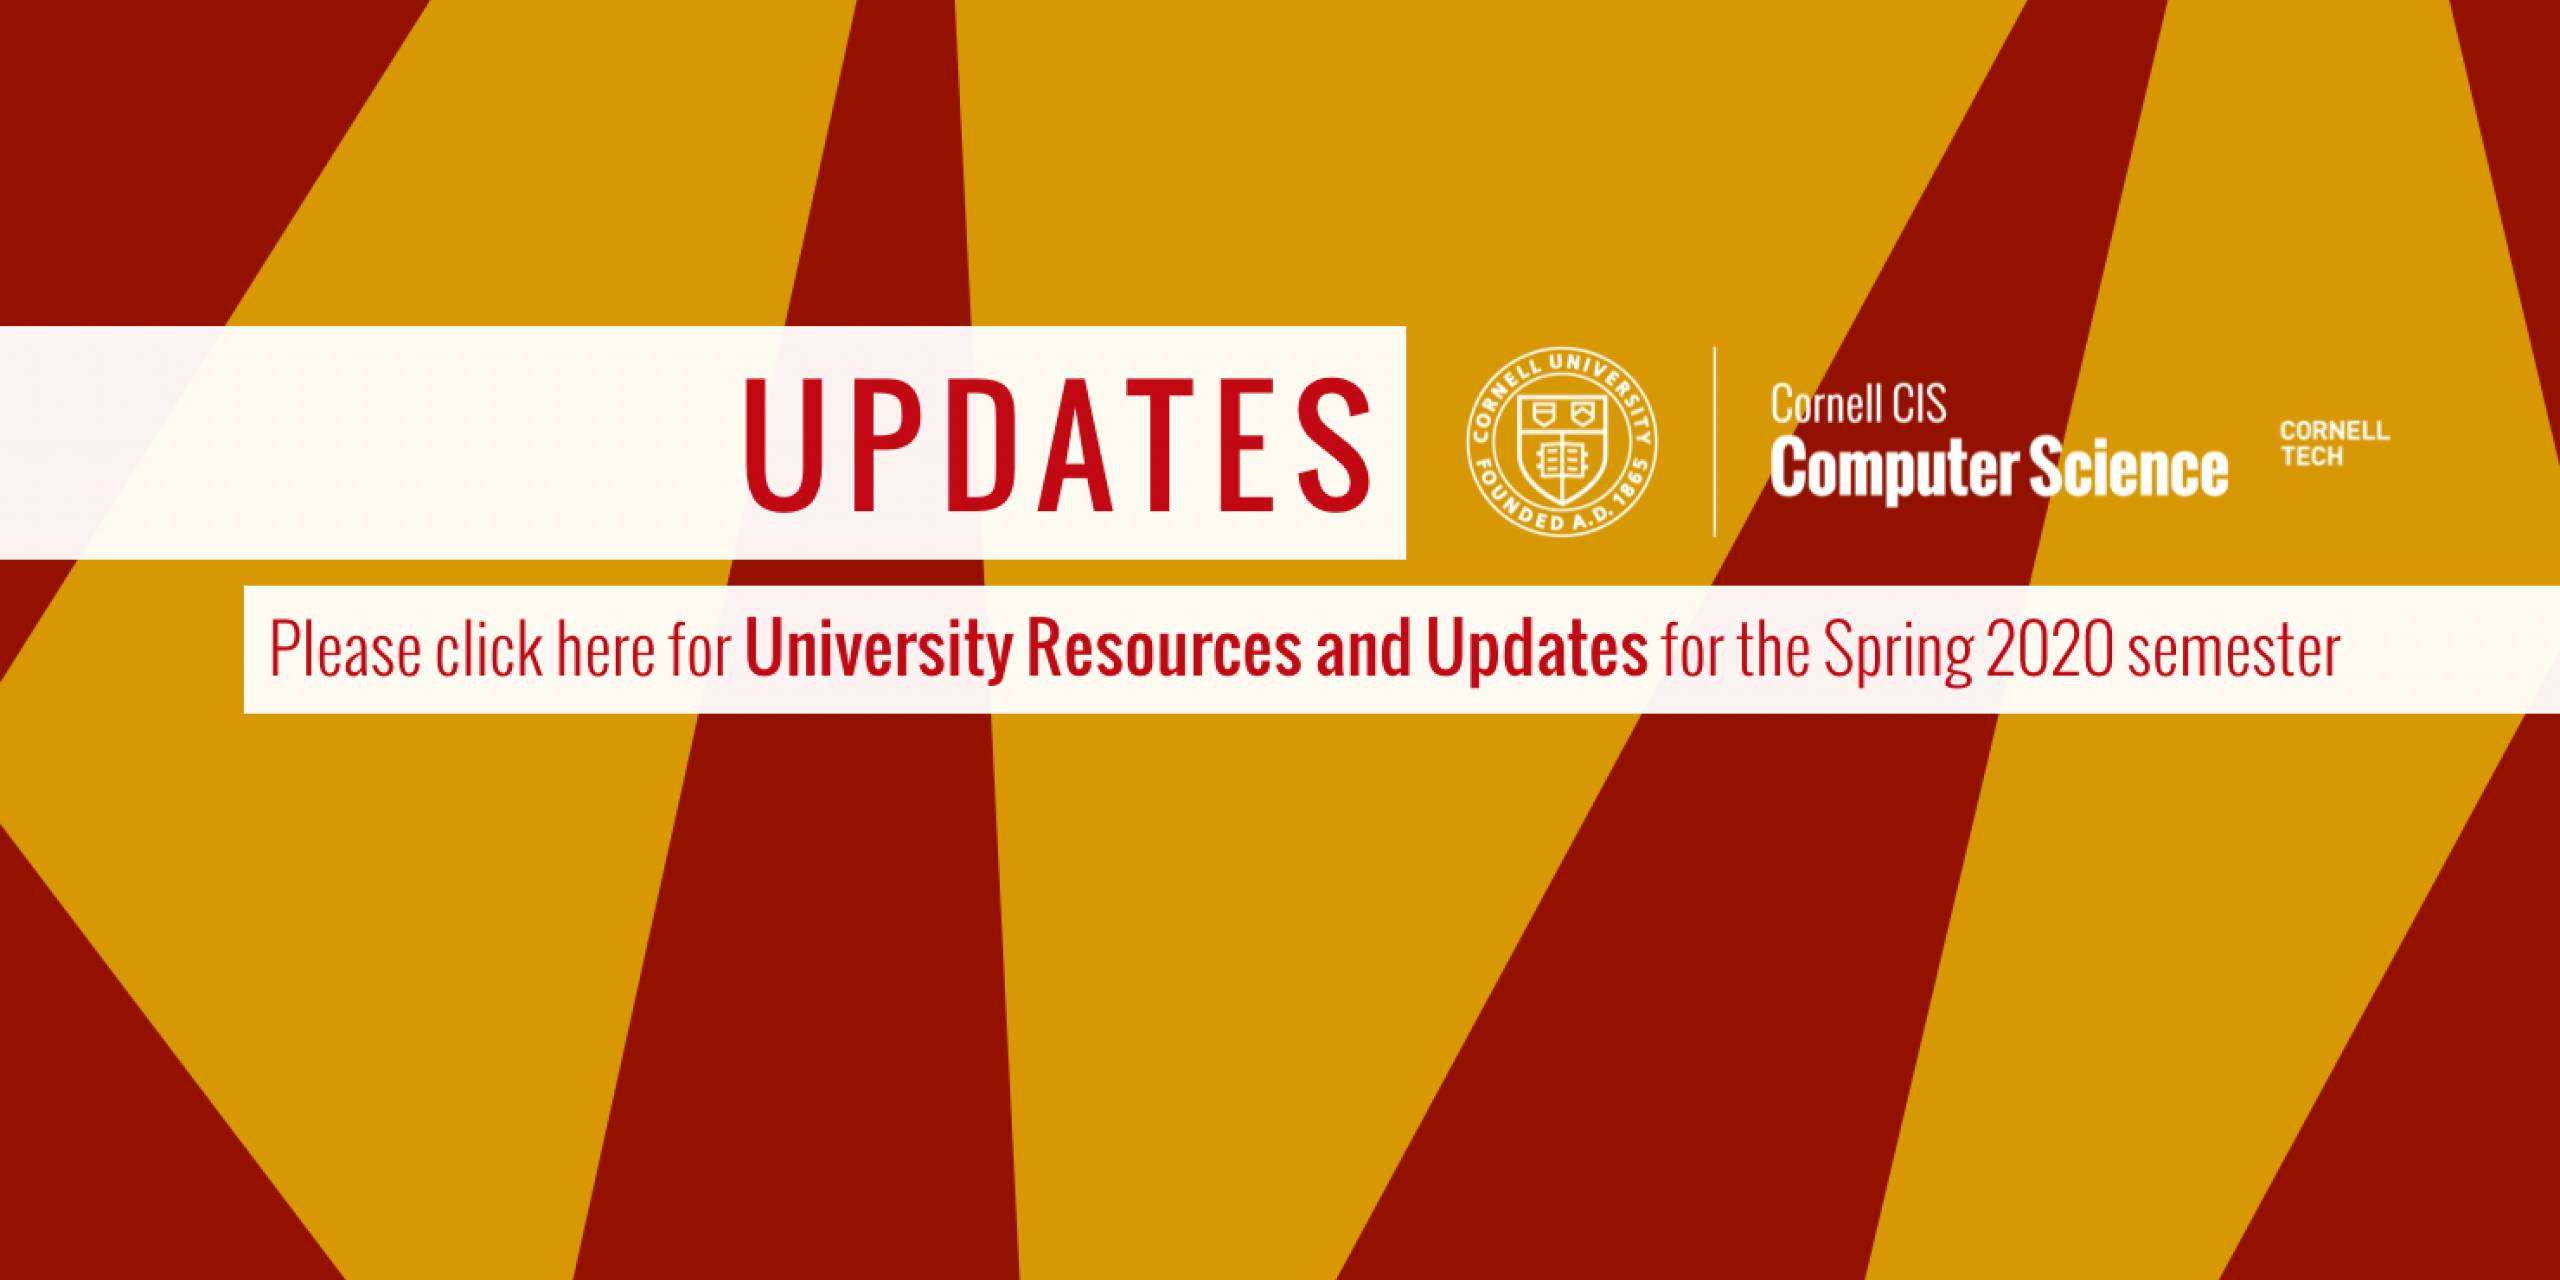 University Resources and Updates for the Spring 2020 semester